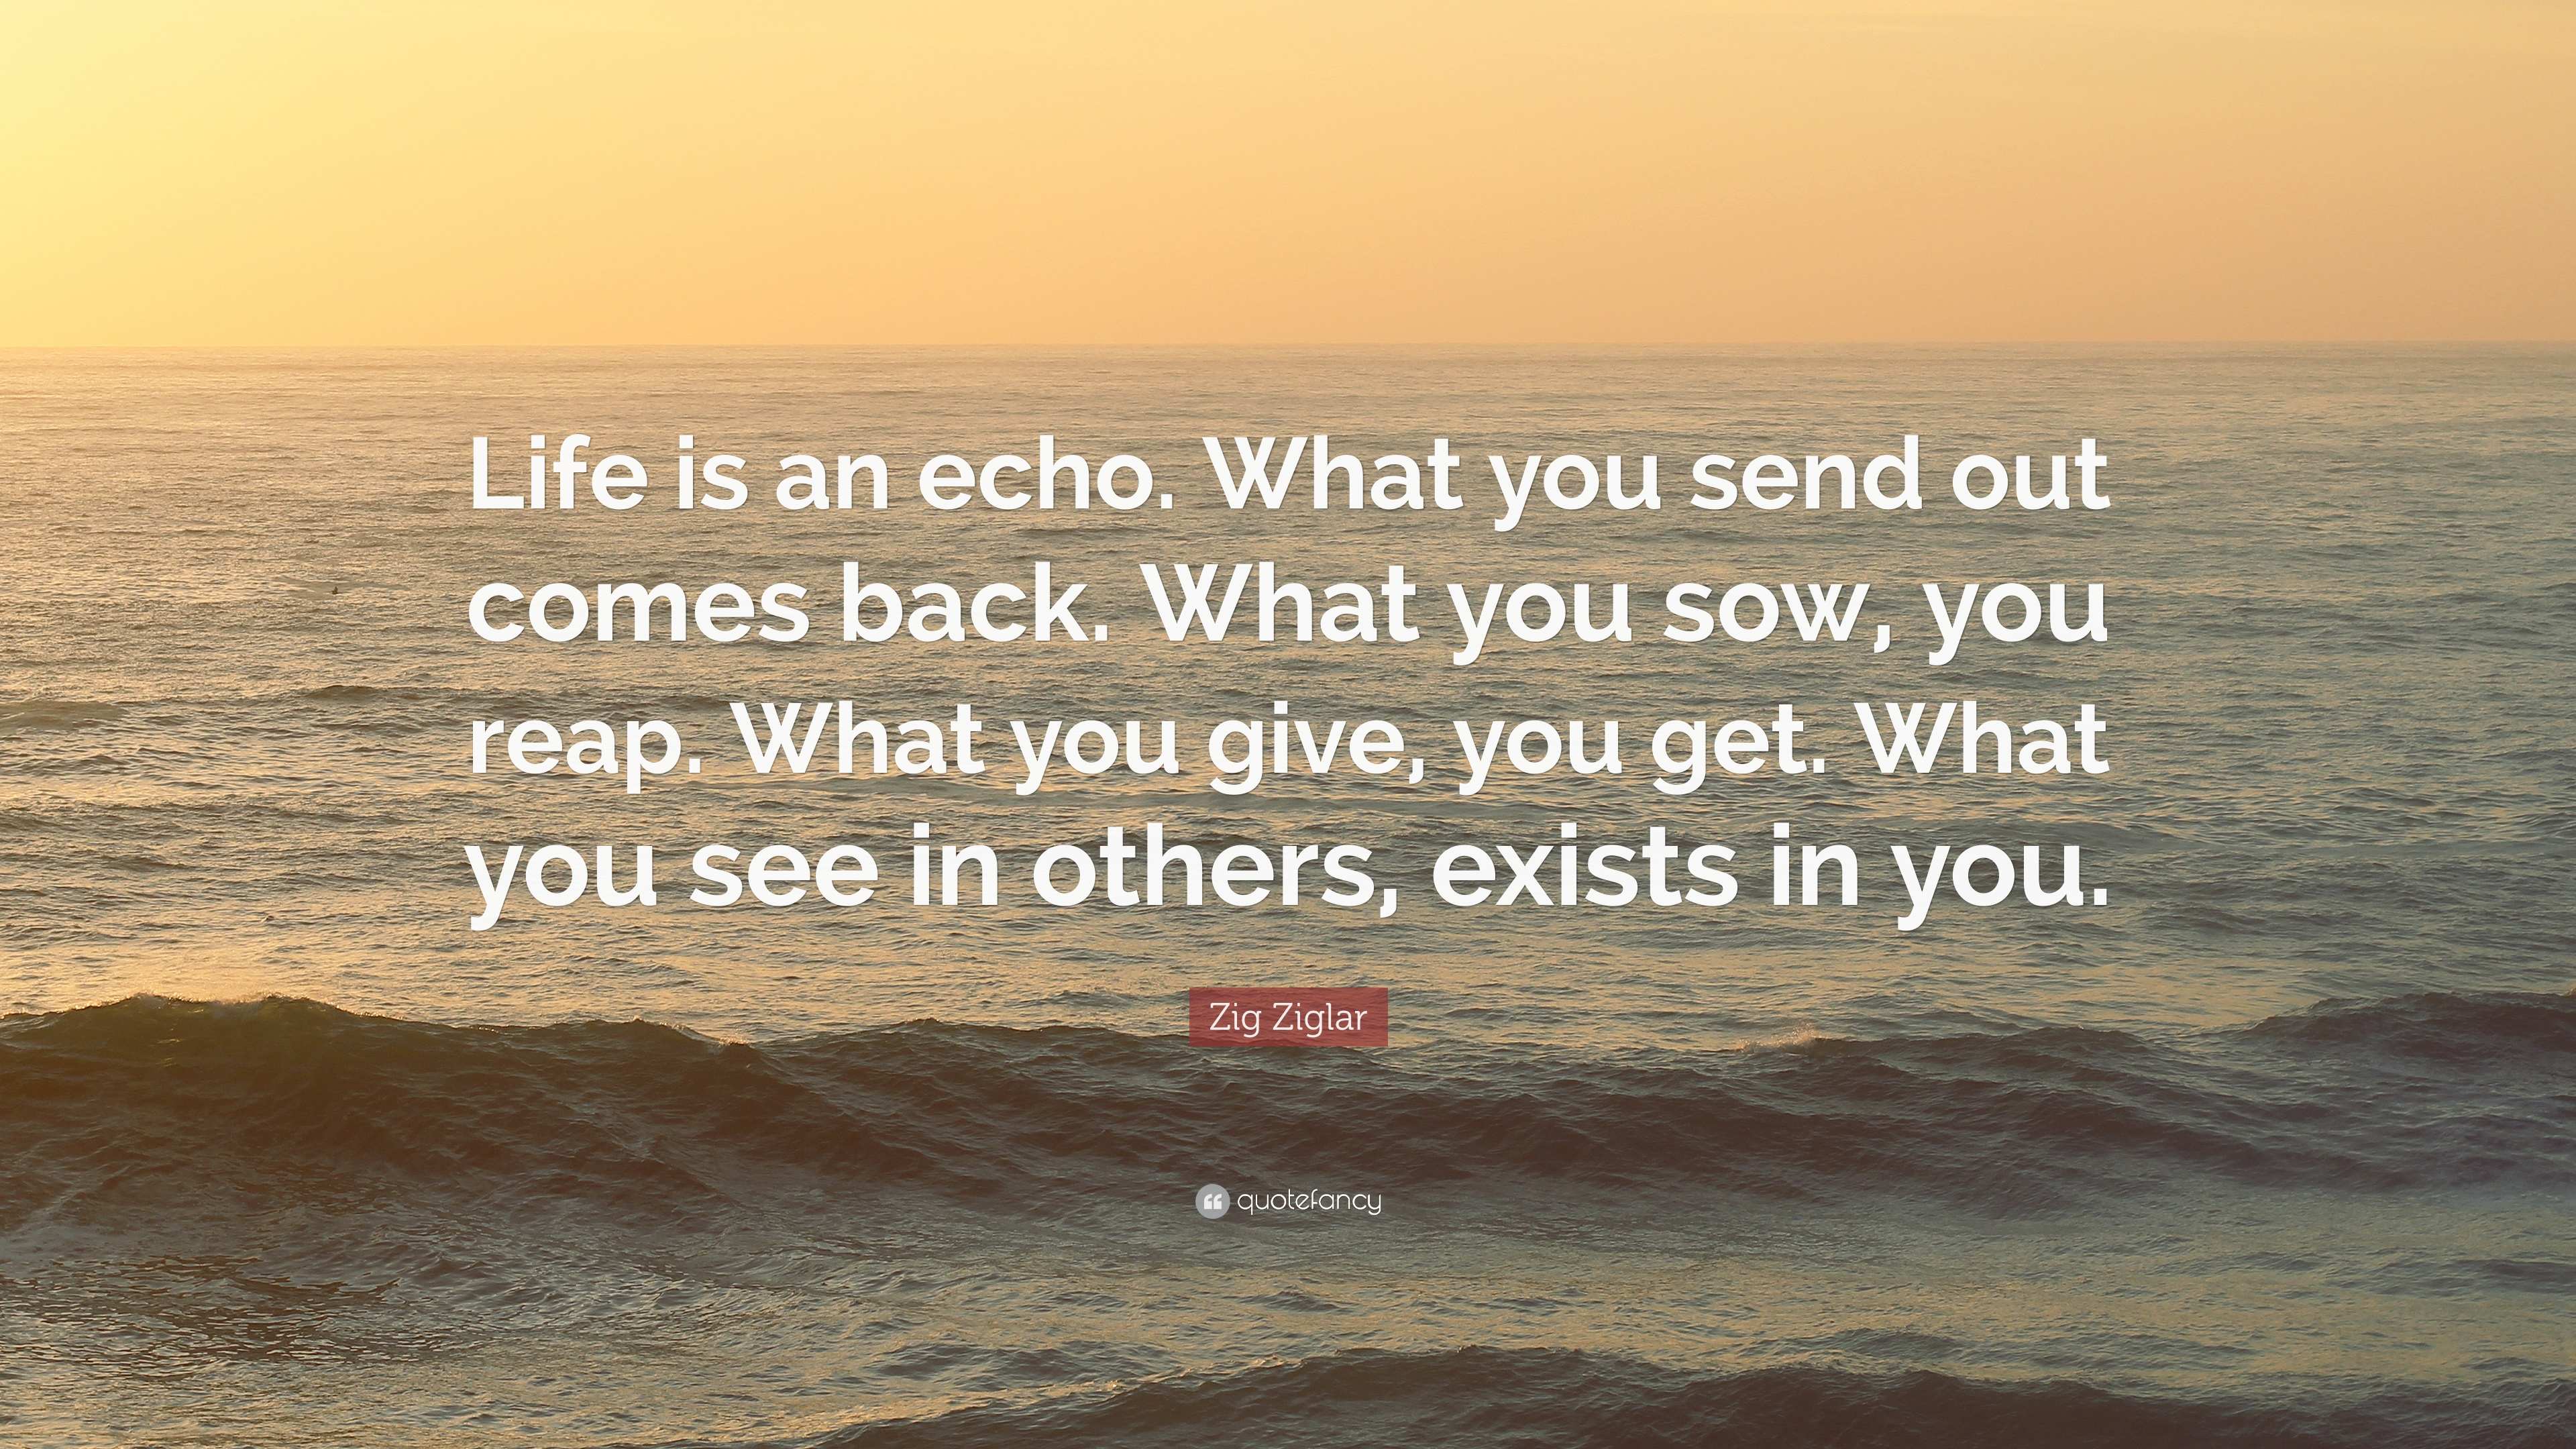 Captivating Zig Ziglar Quote: U201cLife Is An Echo. What You Send Out Comes Back